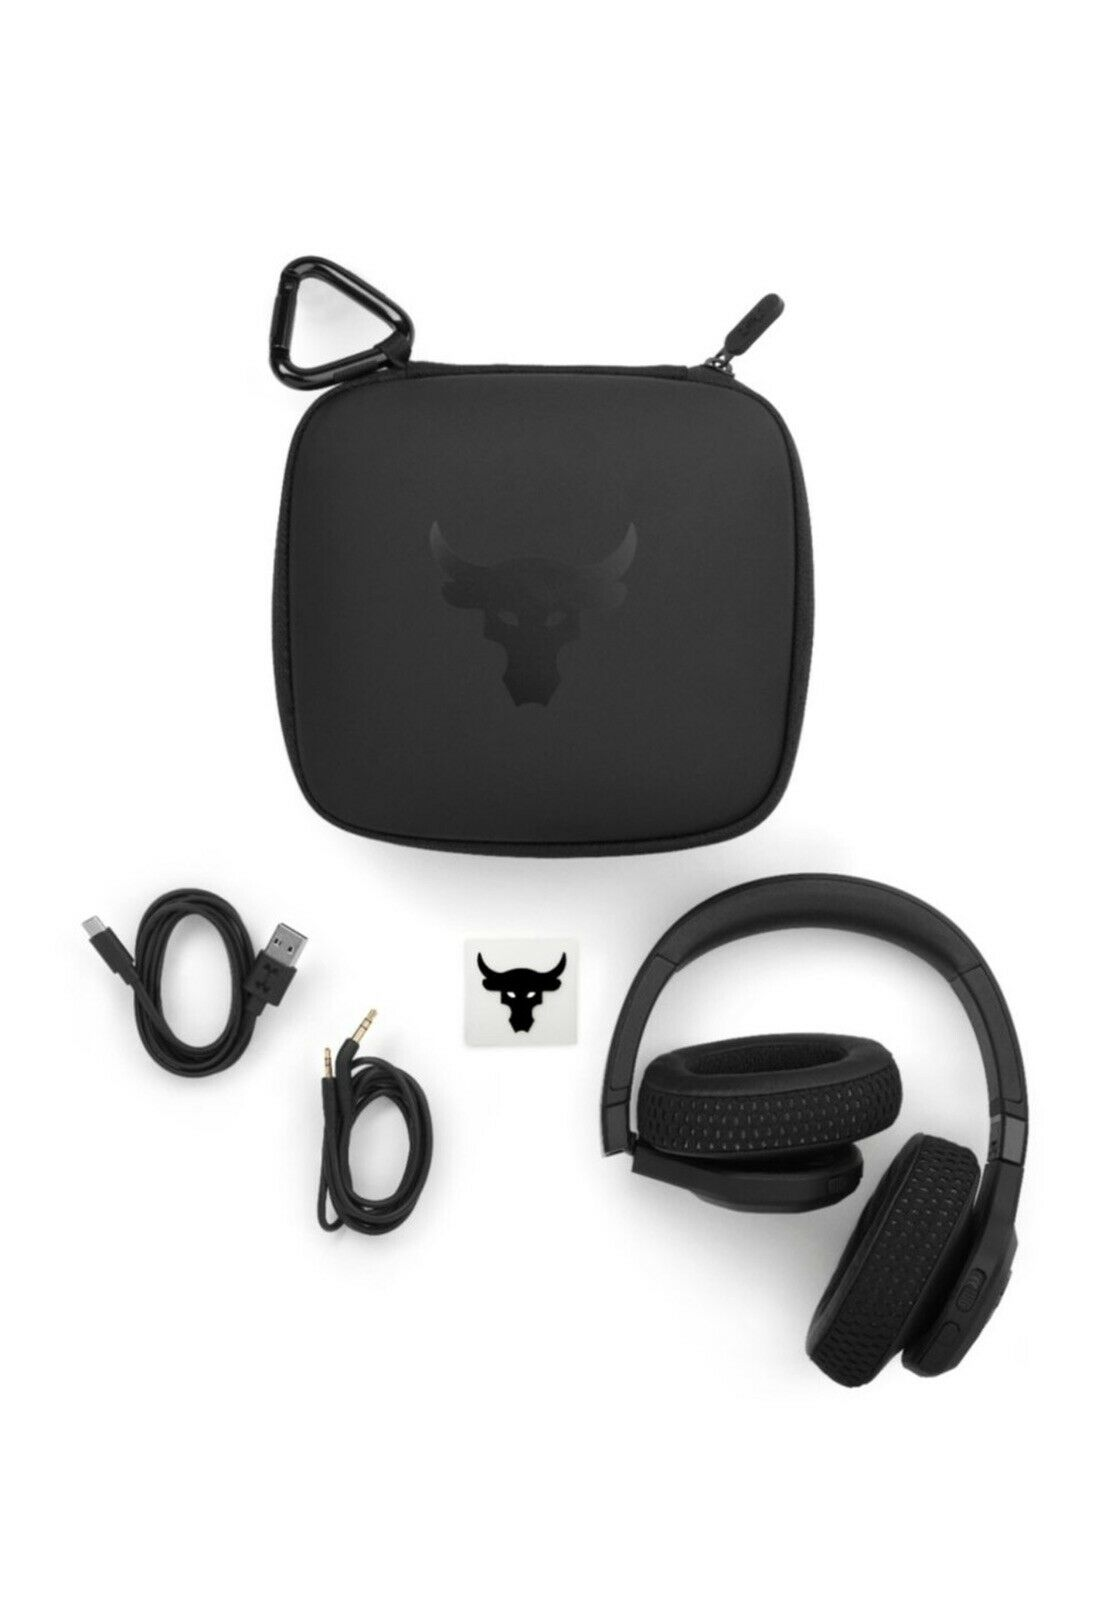 JBL Under Armour Project Rock Wireless Over-the-Ear Headphones Newest Model Fast